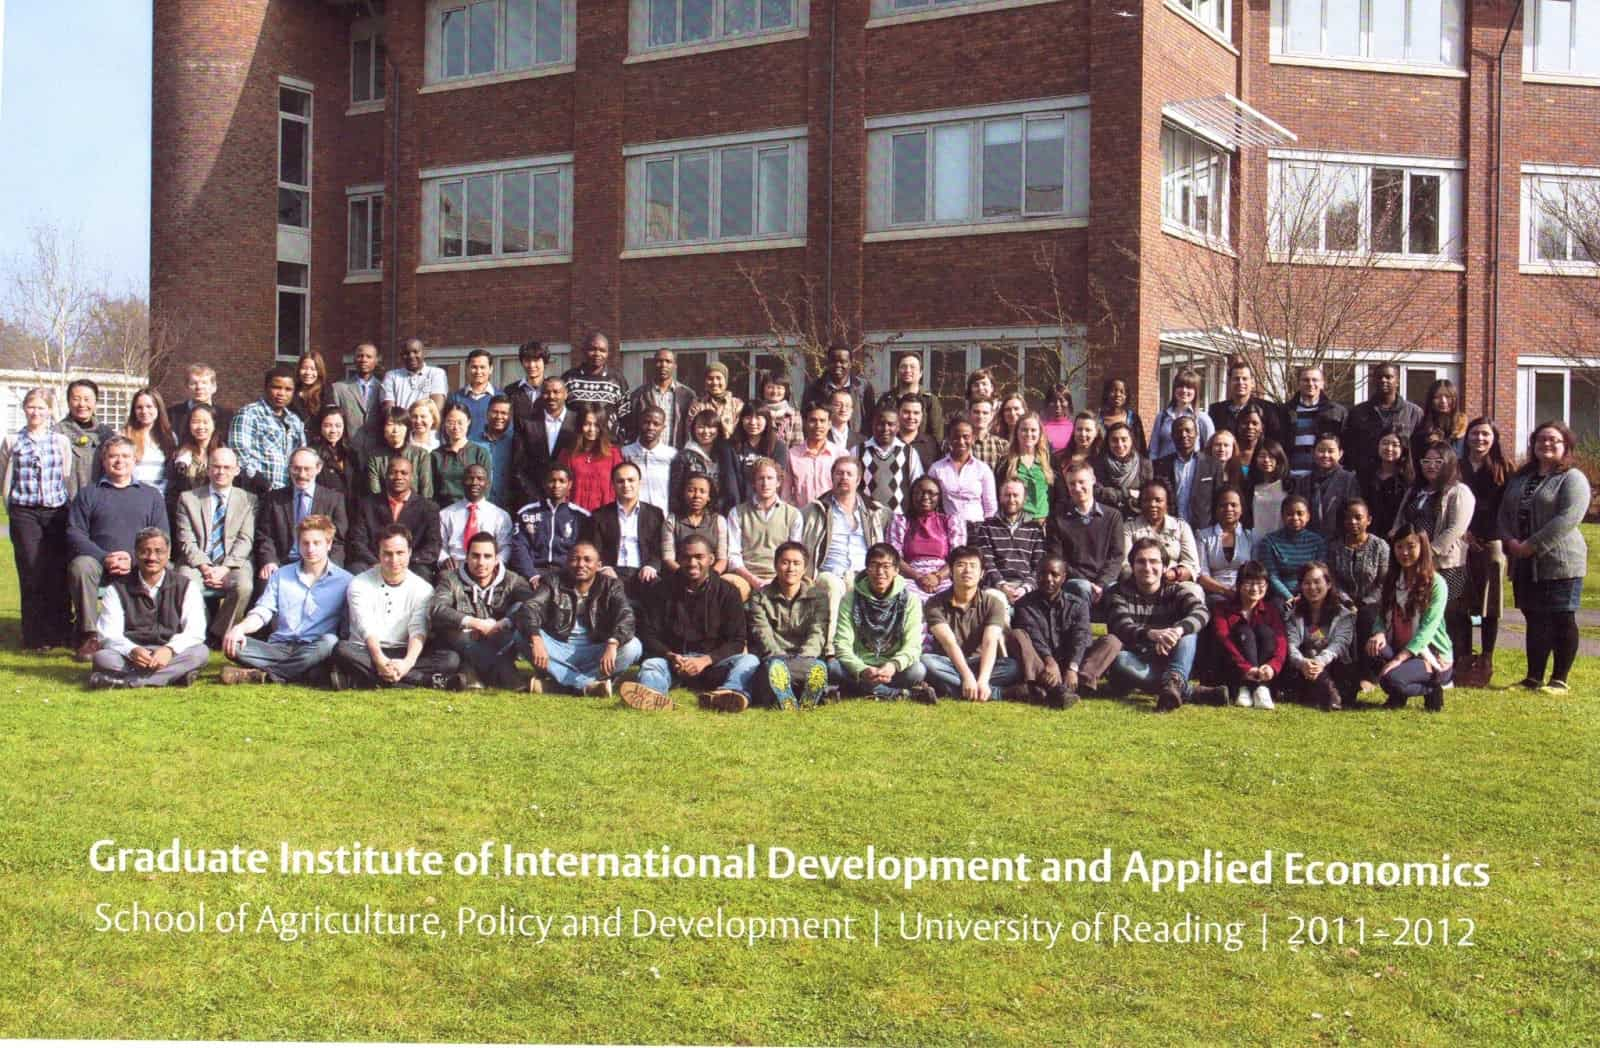 ภาพตอนเรียนจบ International Development and Applied Economics ที่ University of Reading